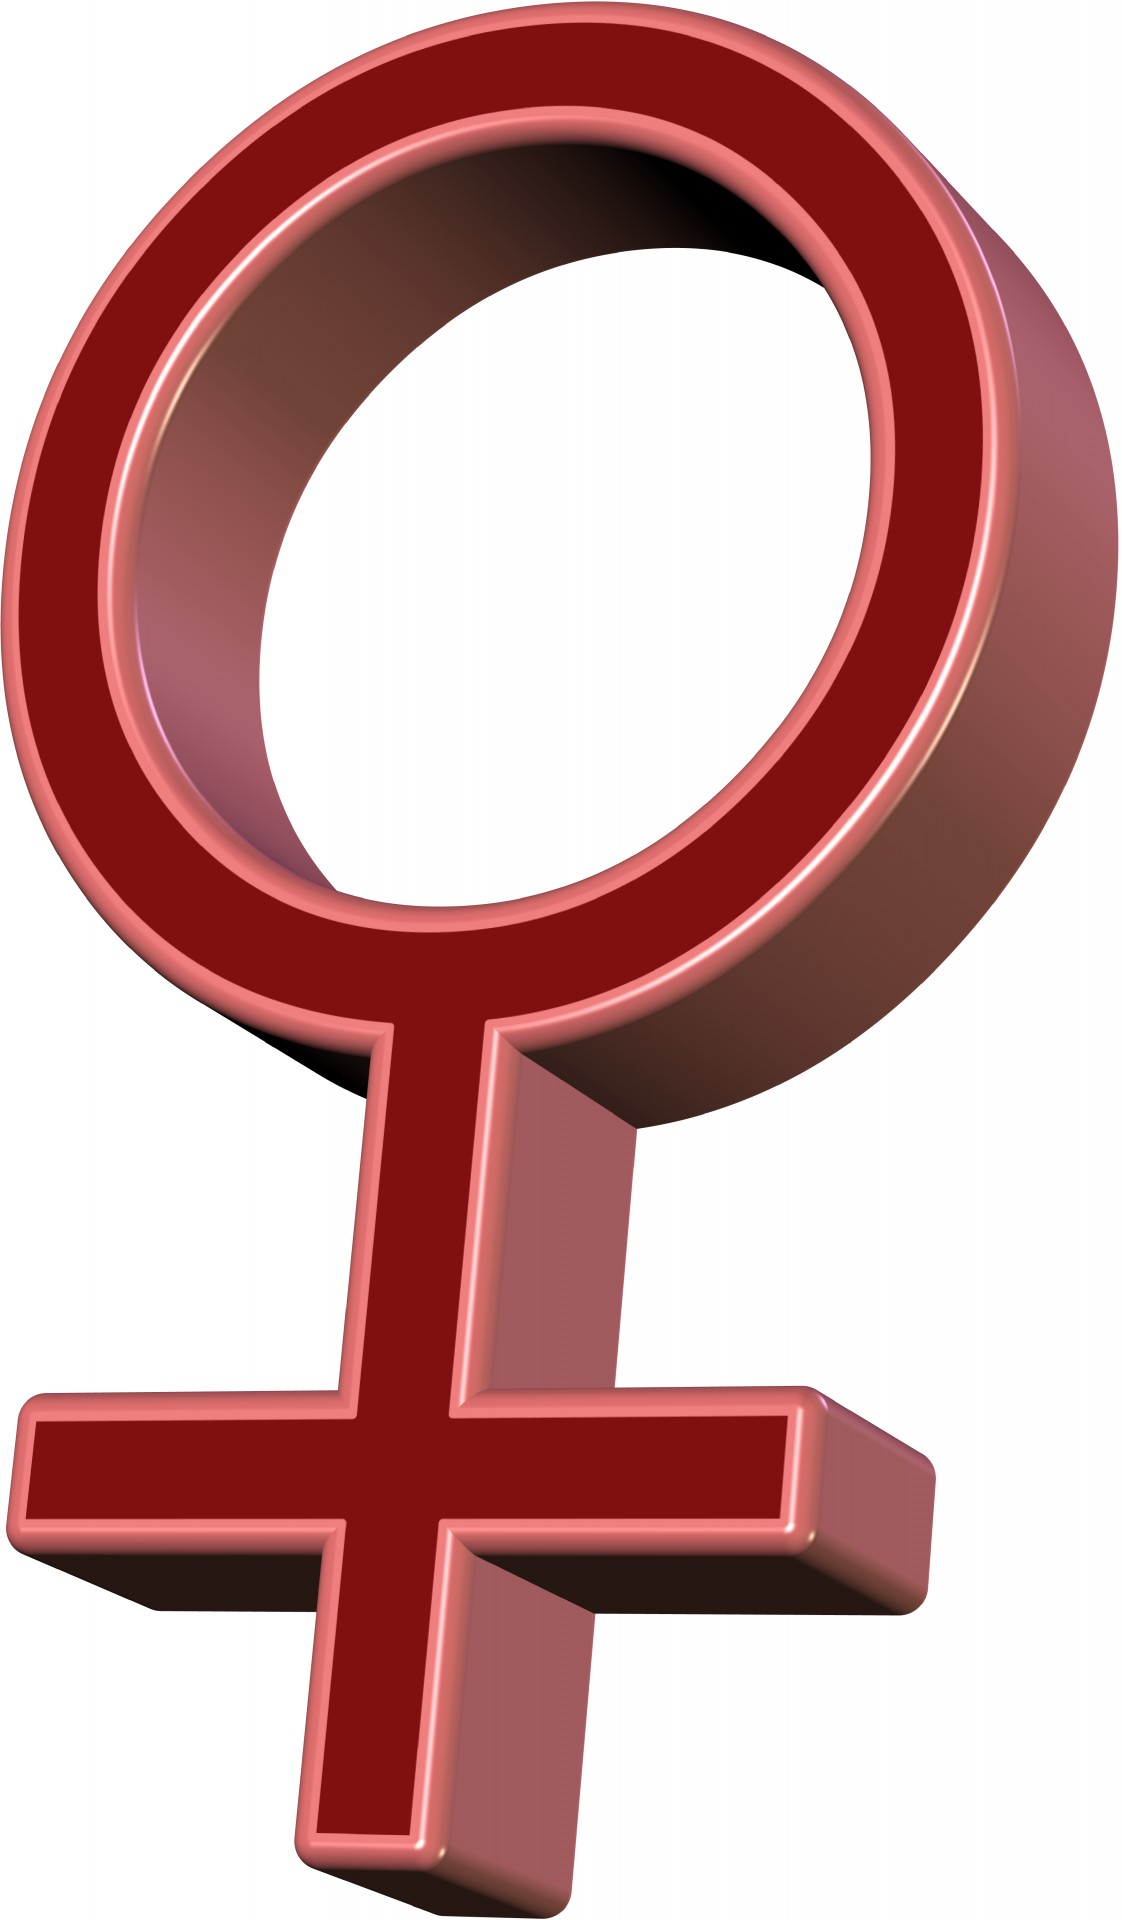 Female Symbol by Piotr. Used under Public Domain